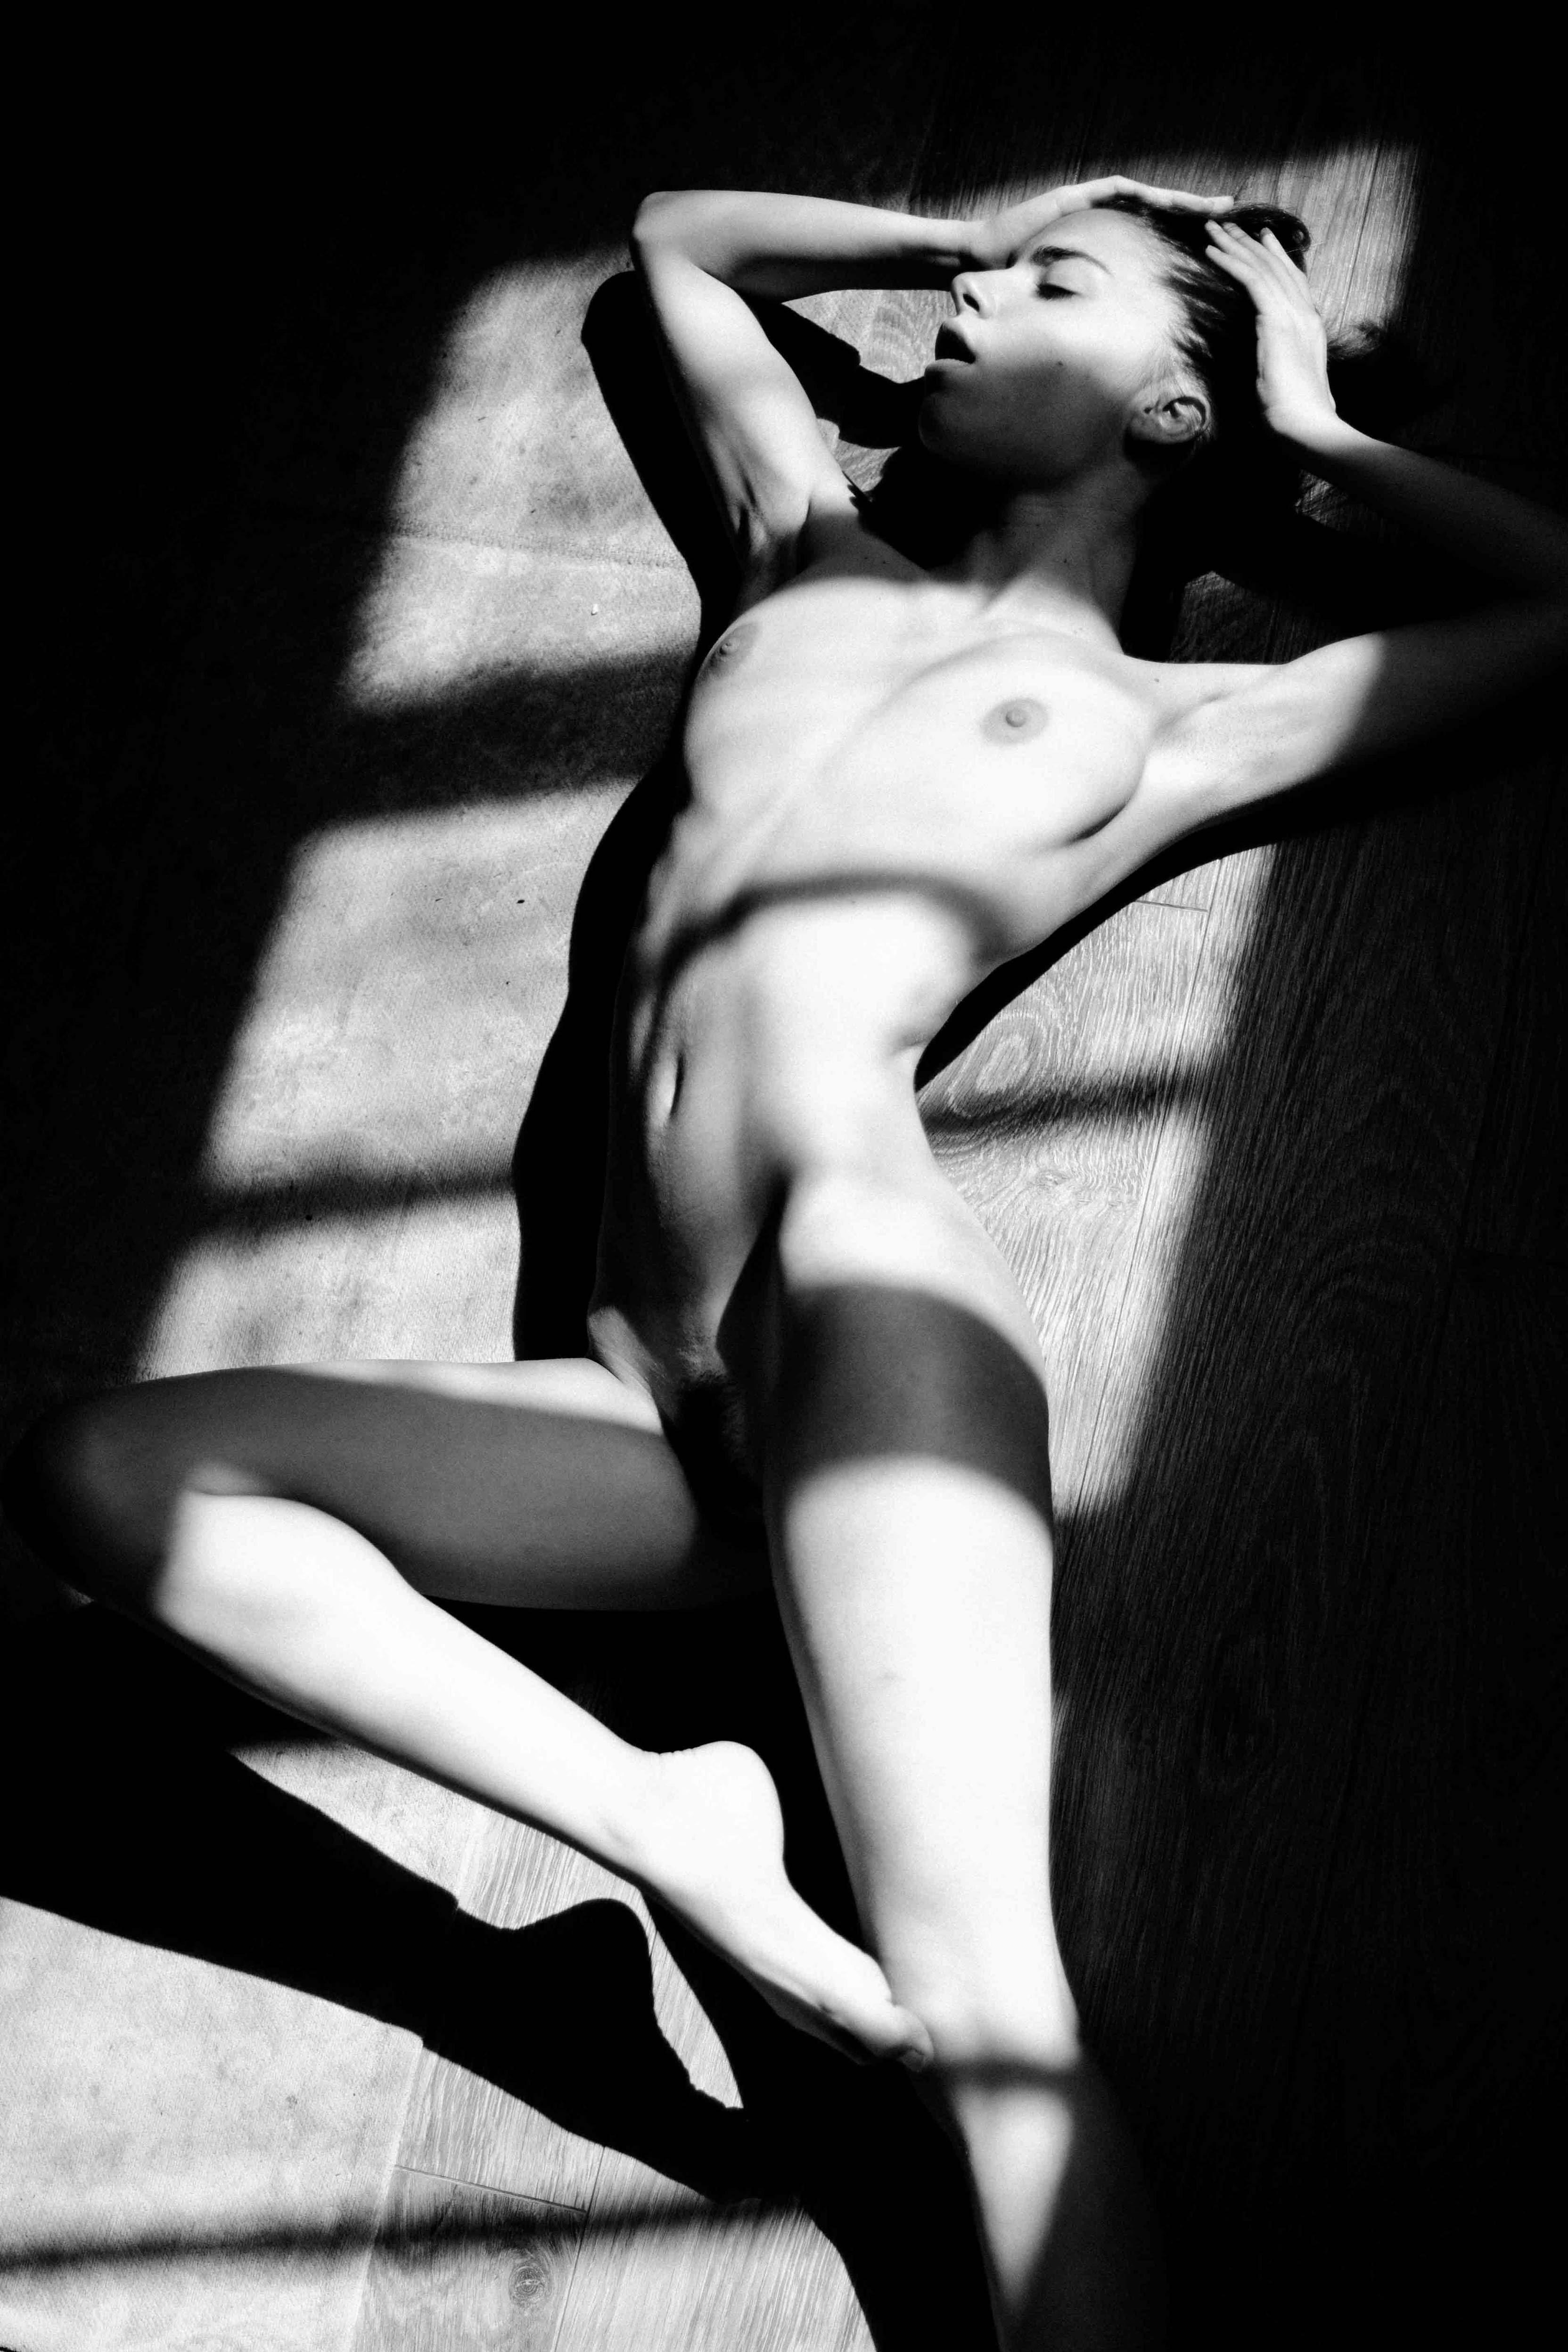 Affection / Rebecca Bagnol nude by Pier Gab